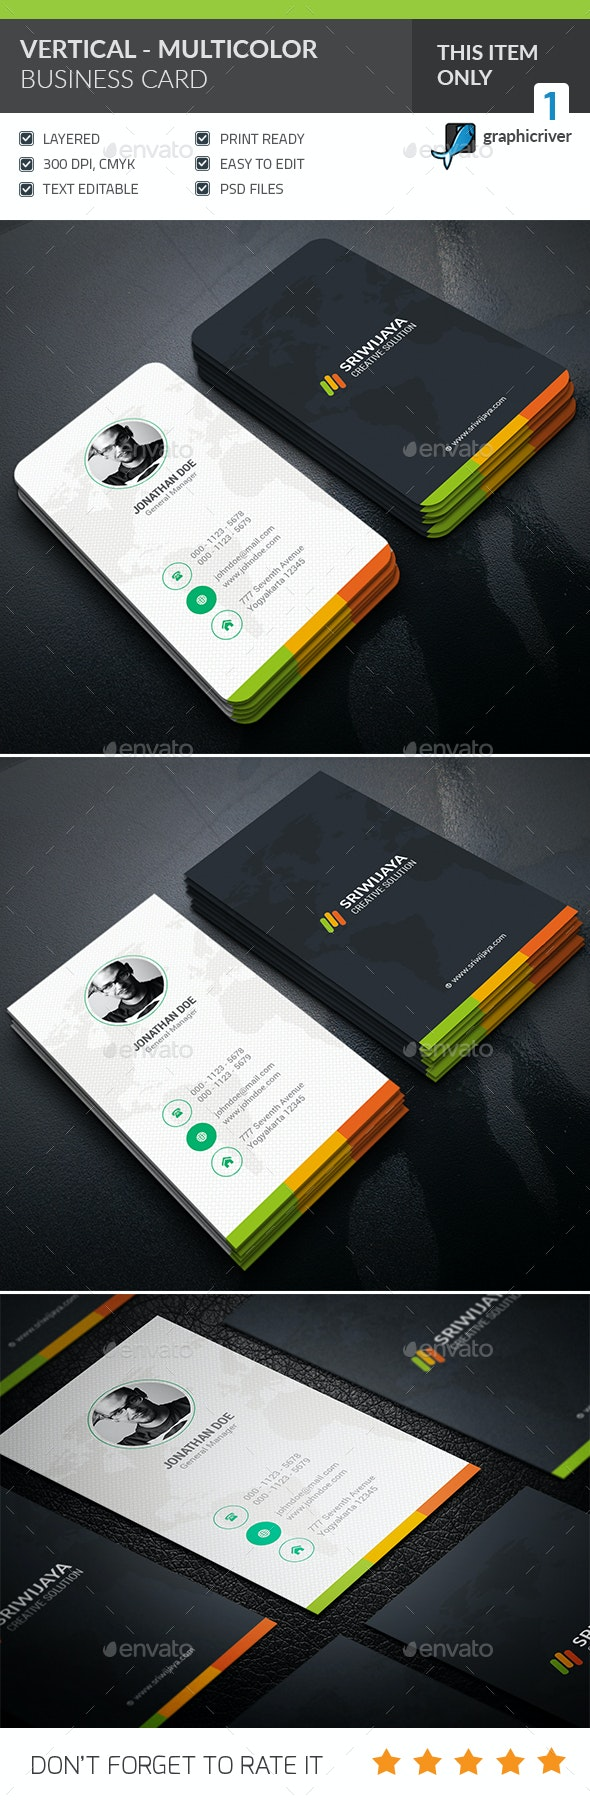 Vertical Multicolor Business card  - Creative Business Cards